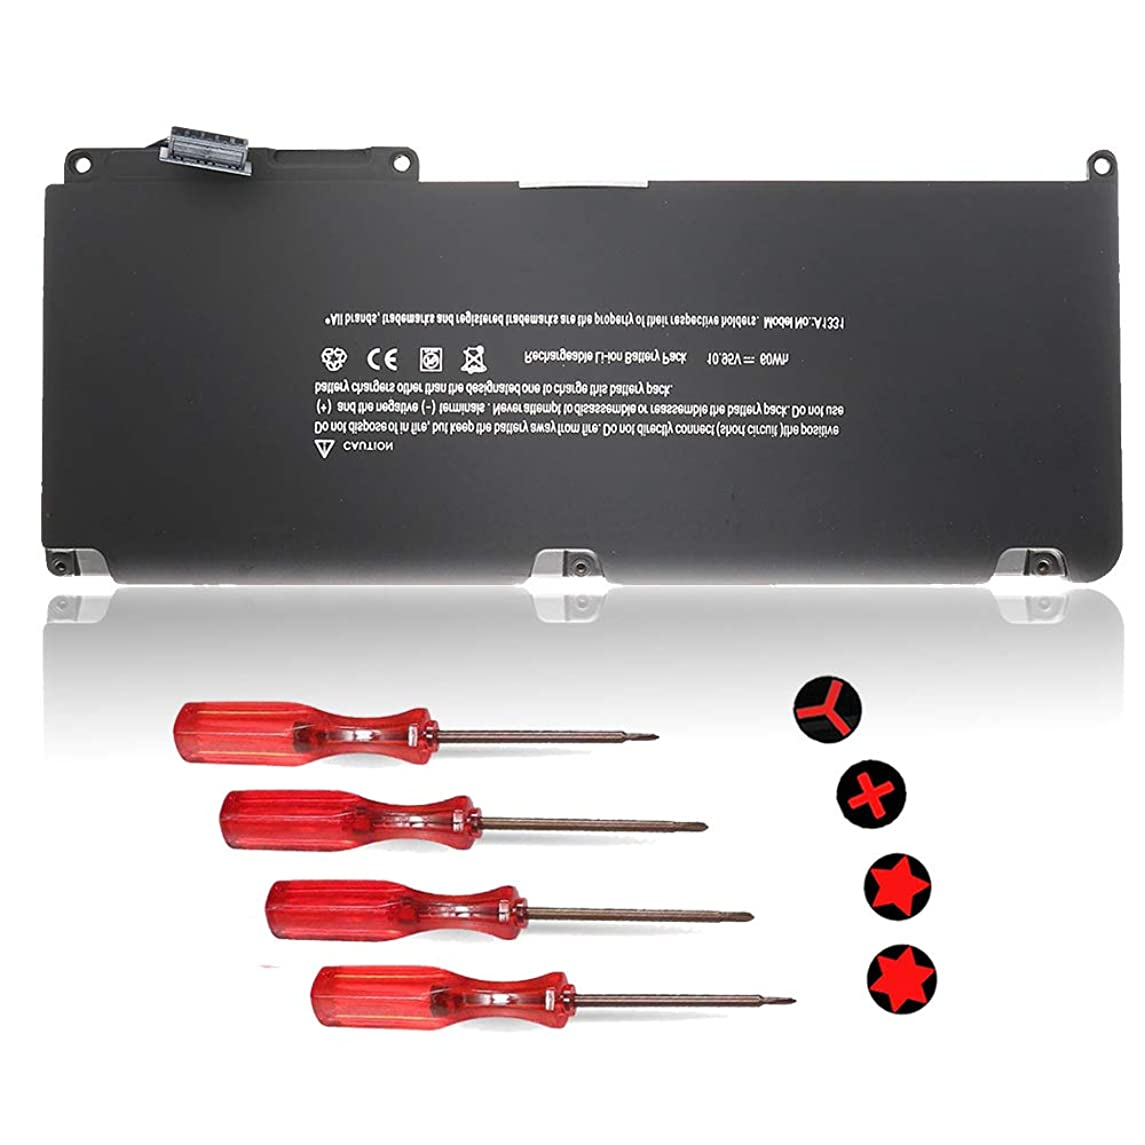 A1342 A1331 Battery Replacement Laptop Battery for Apple MacBook Unibody 13 inch (Only for MacBook Late 2009 Mid 2010),Compabiel for MC516/A MC207/A and MacBook Air MC233LL/A MC234LL/A - 10.95V